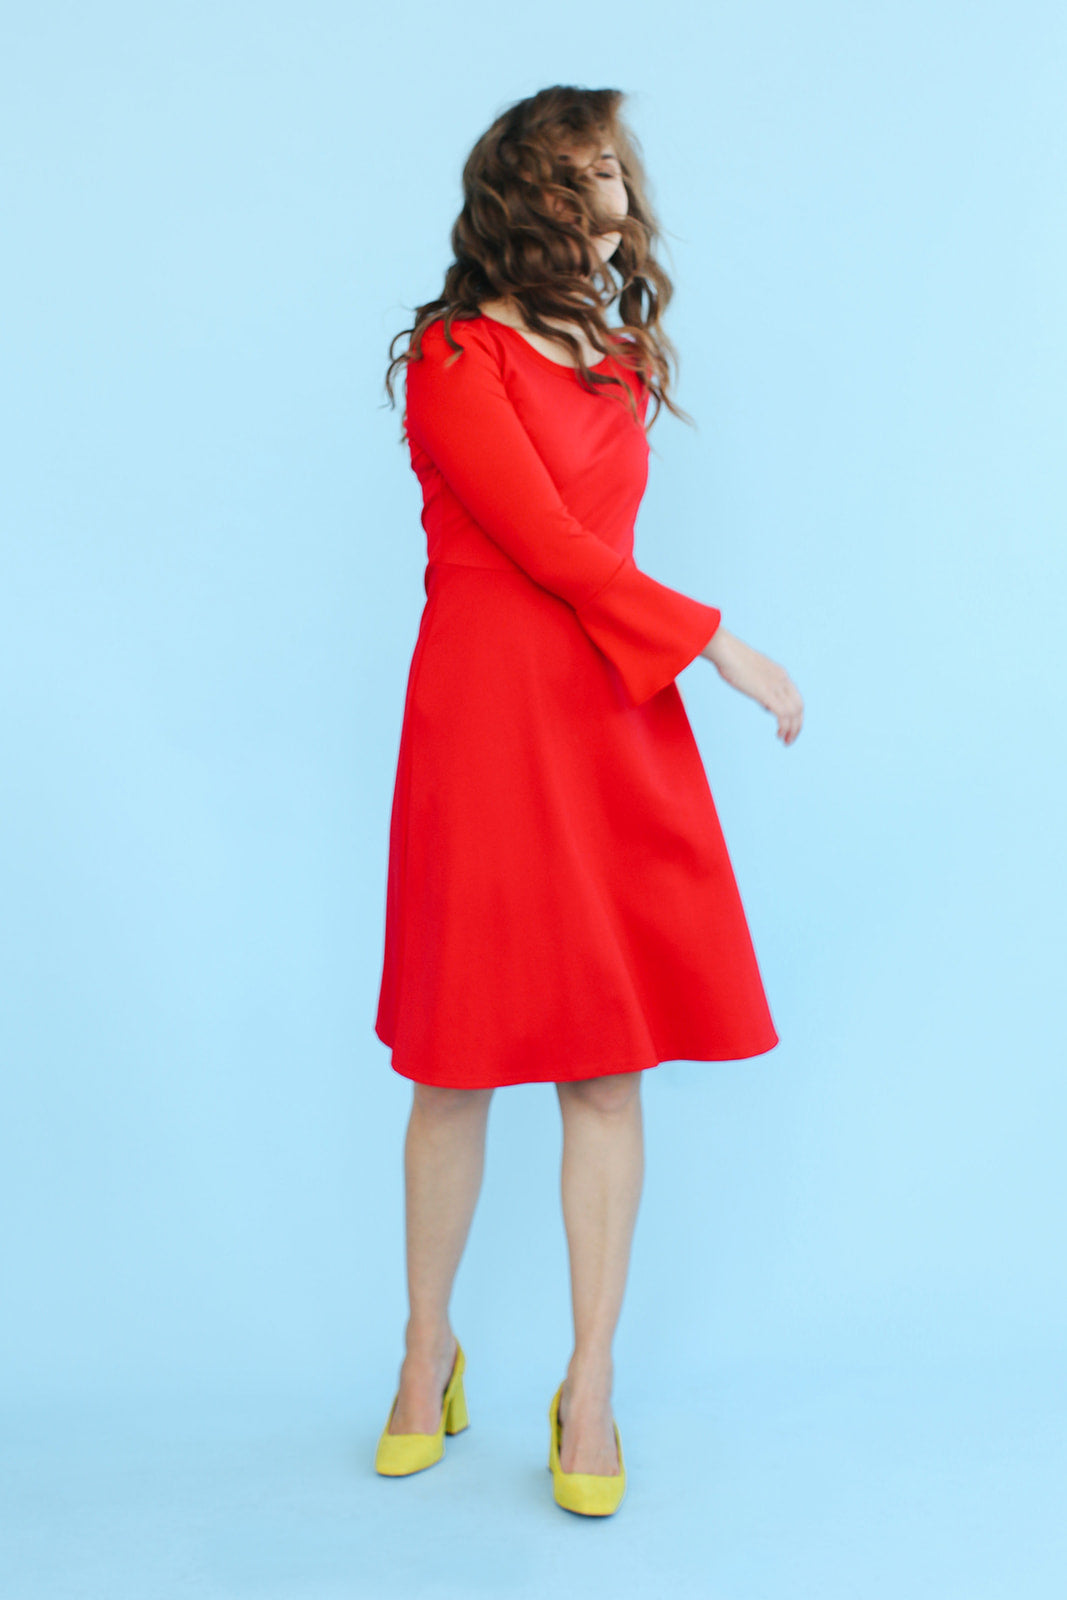 Sonnet James - ROSIE - RED - Dress,Red